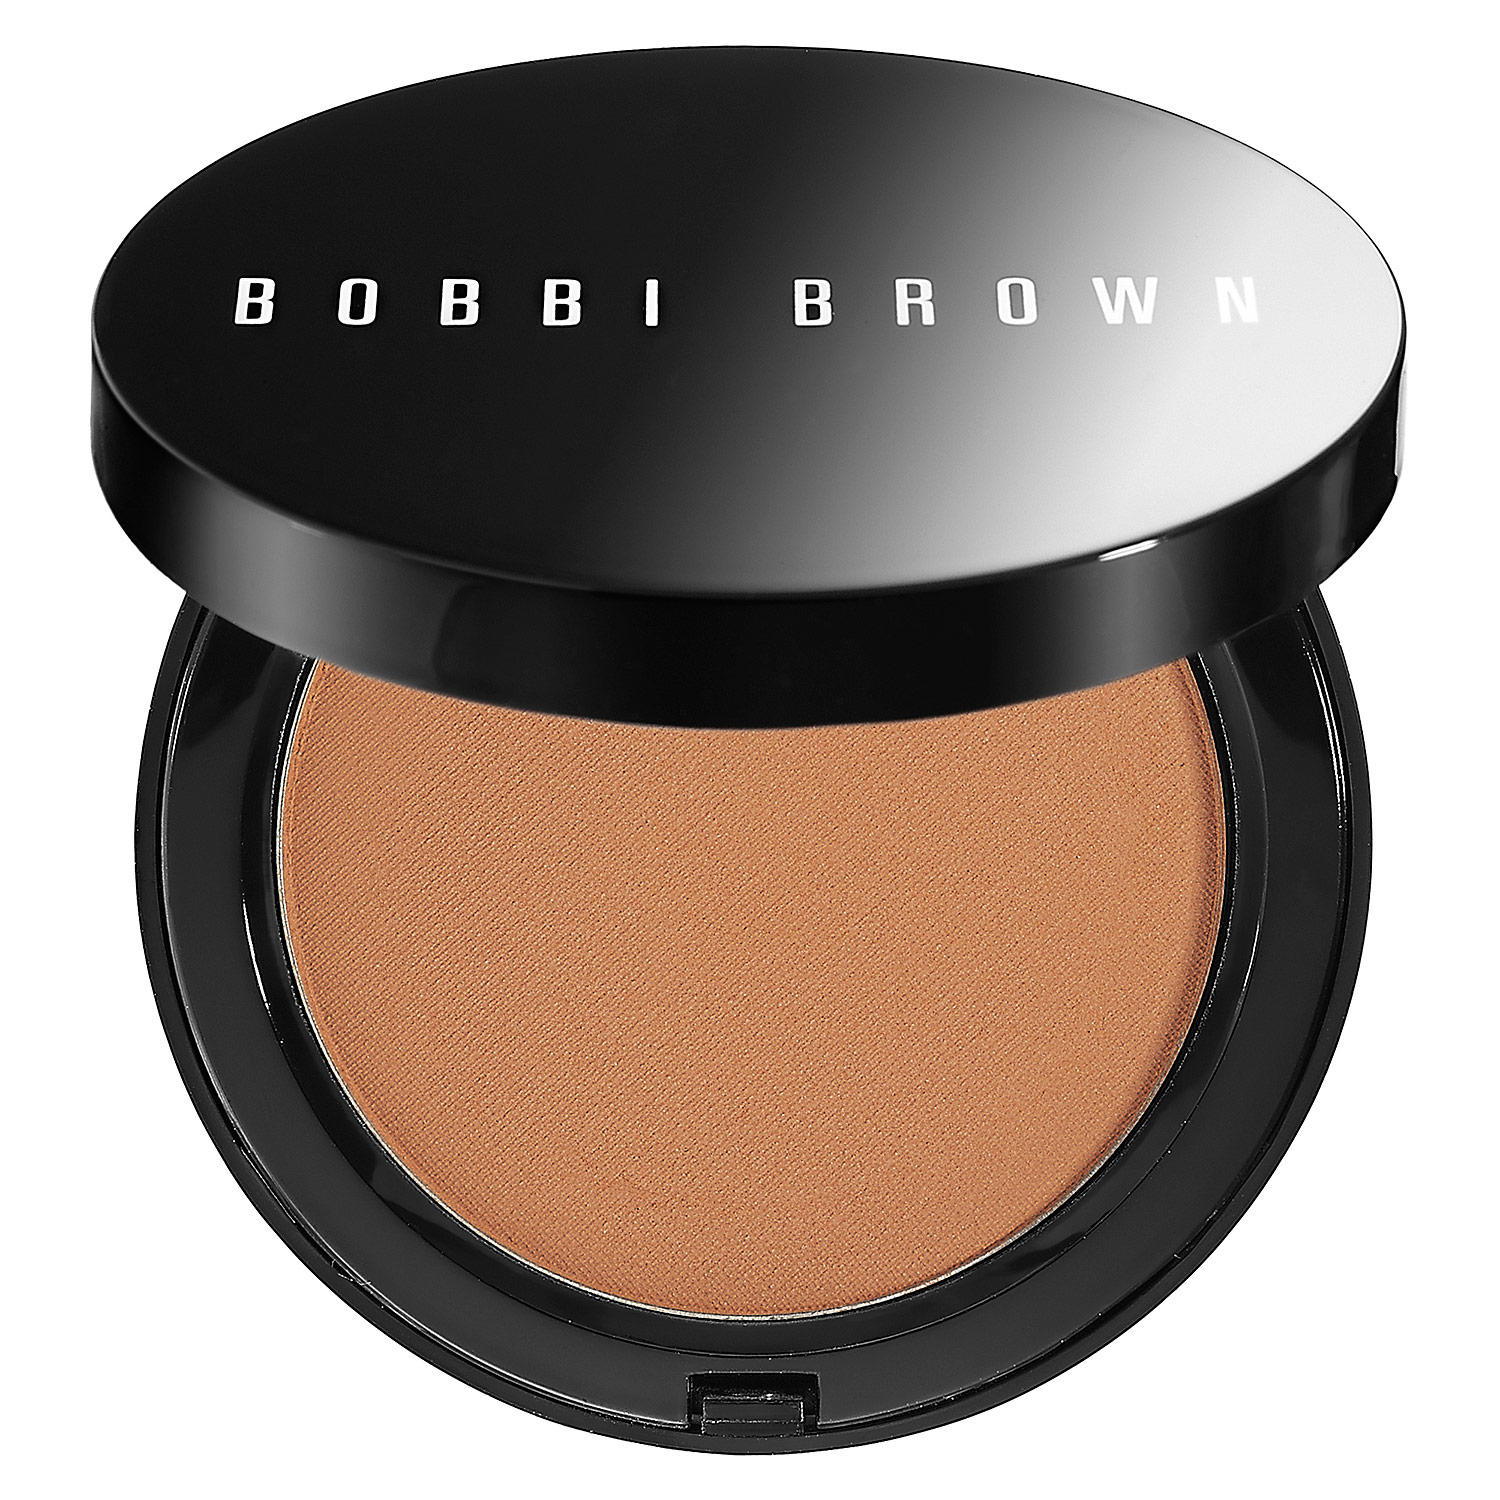 Bobbi Brown Bronzing Powder Natural 1